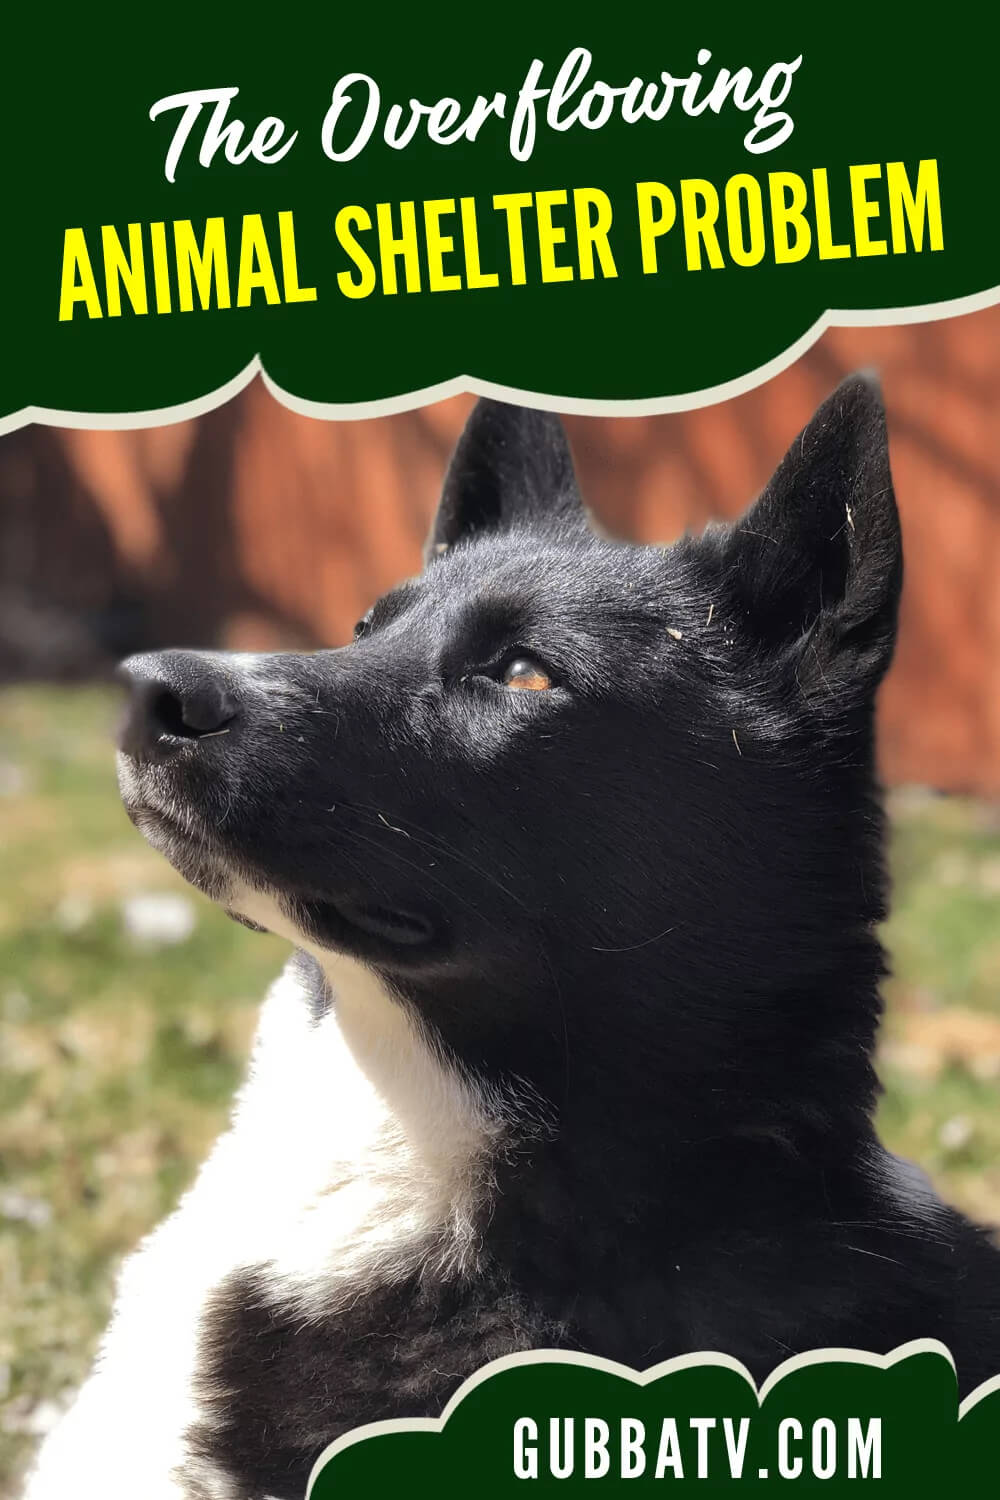 The Overflowing Animal Shelter Problem